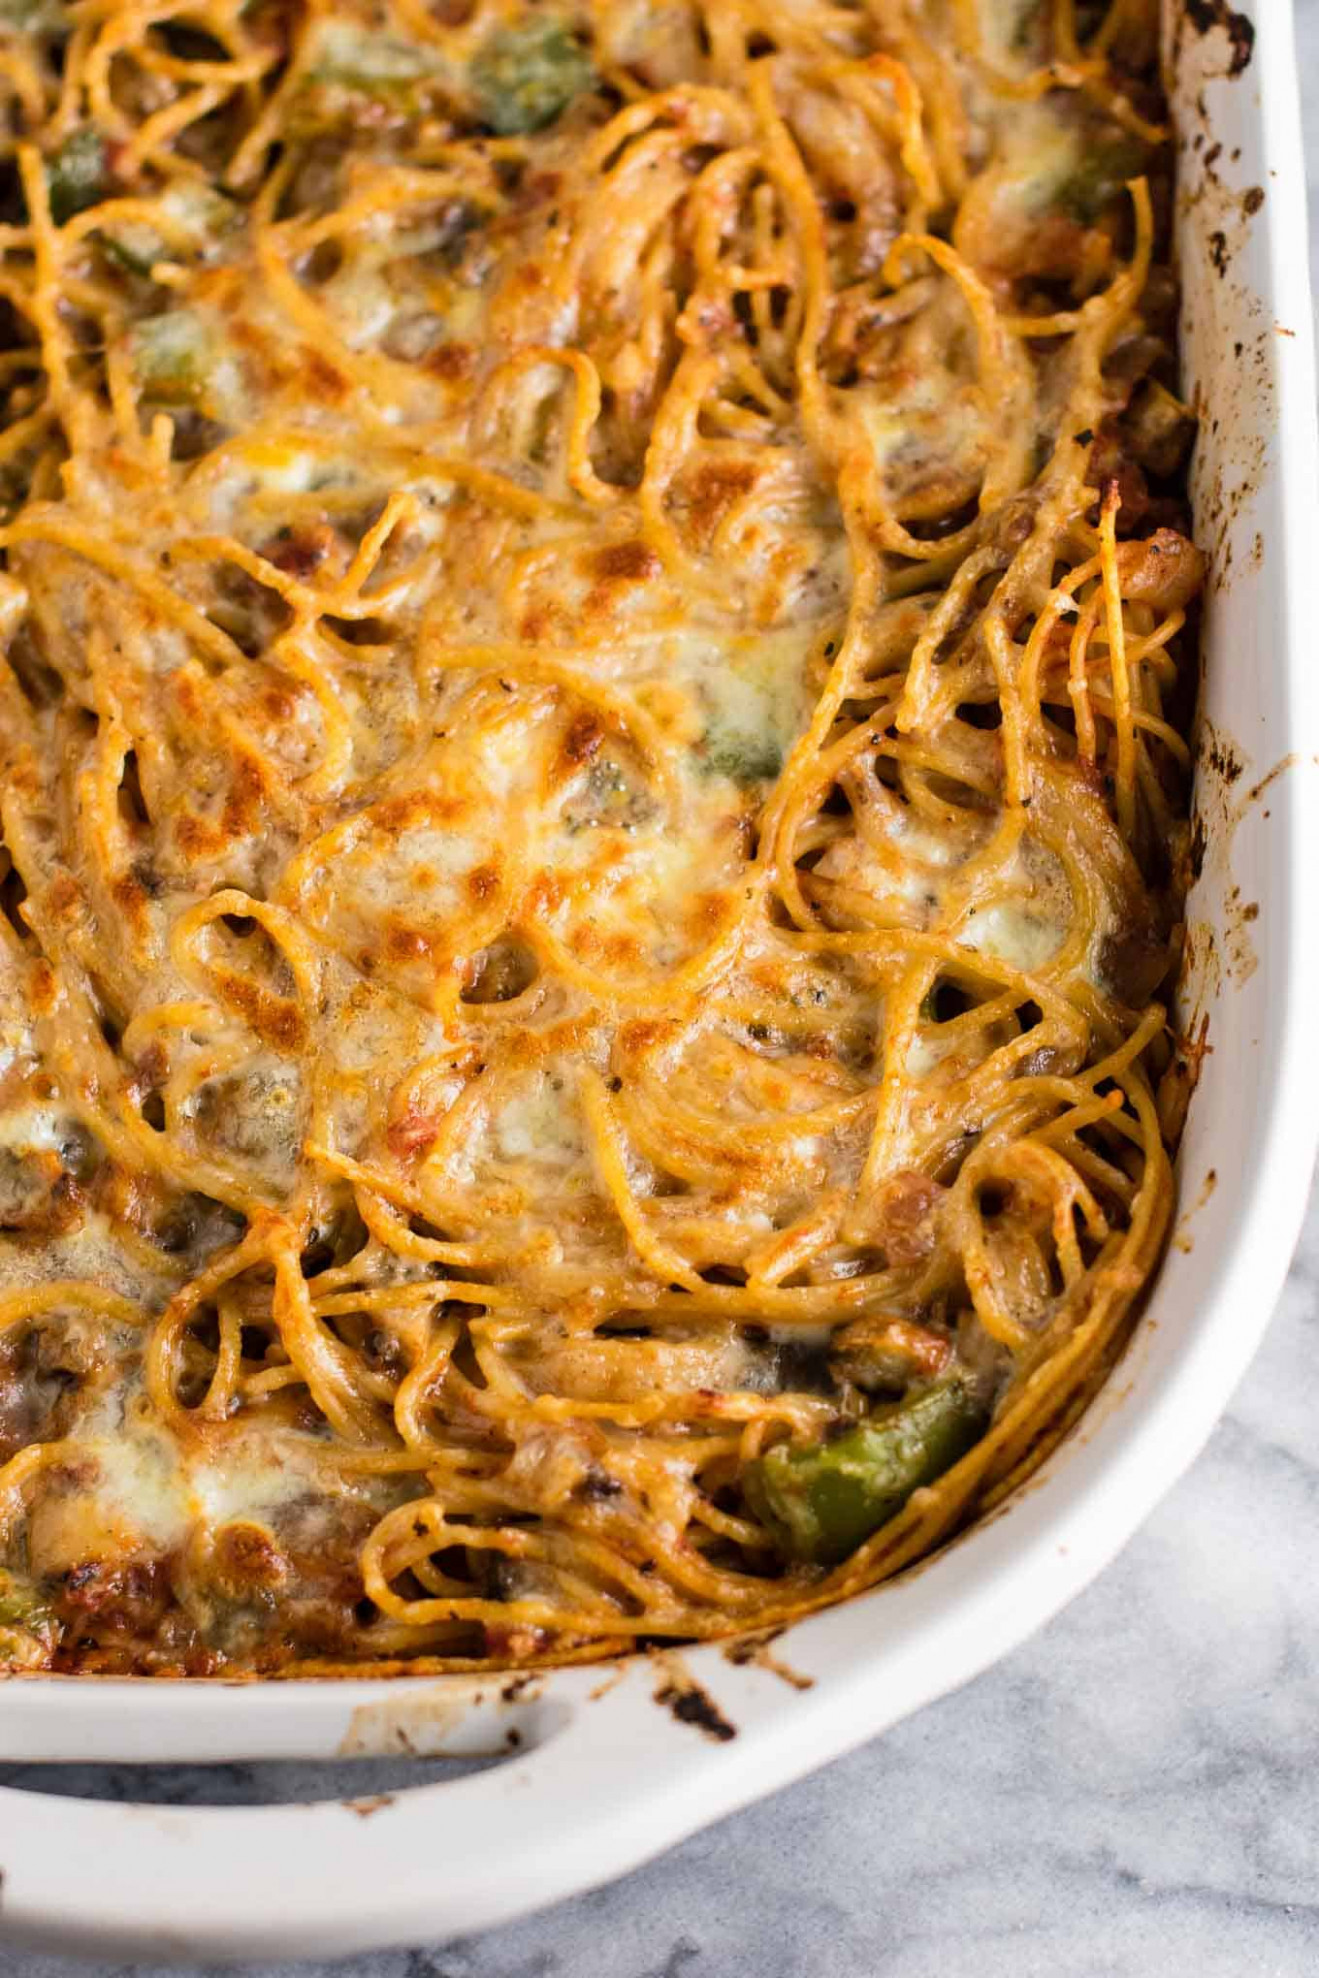 Vegetarian Baked Spaghetti Recipe - Build Your Bite